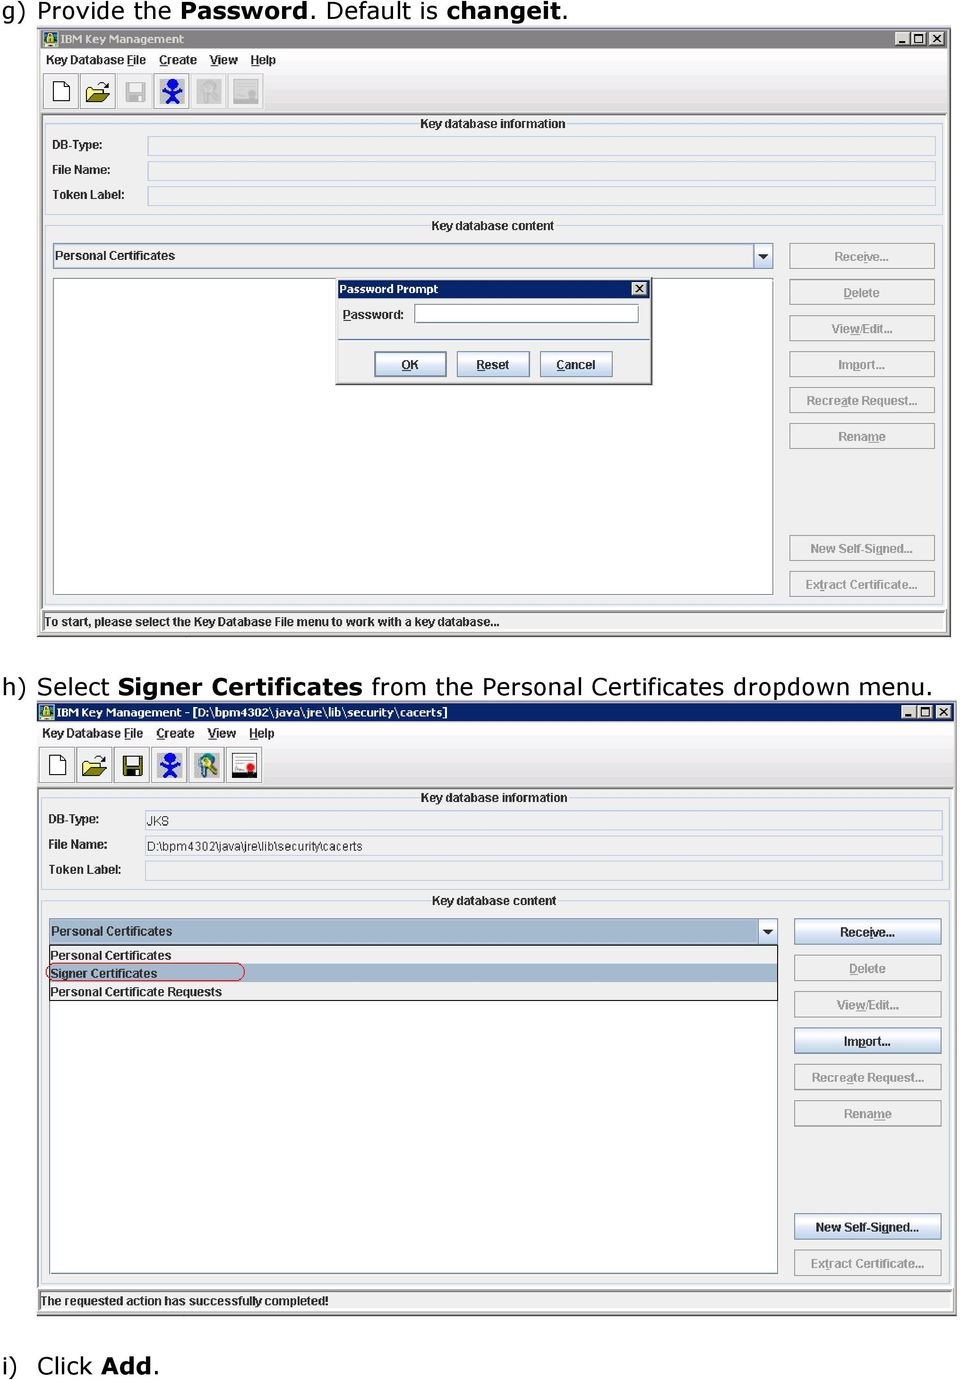 h) Select Signer Certificates